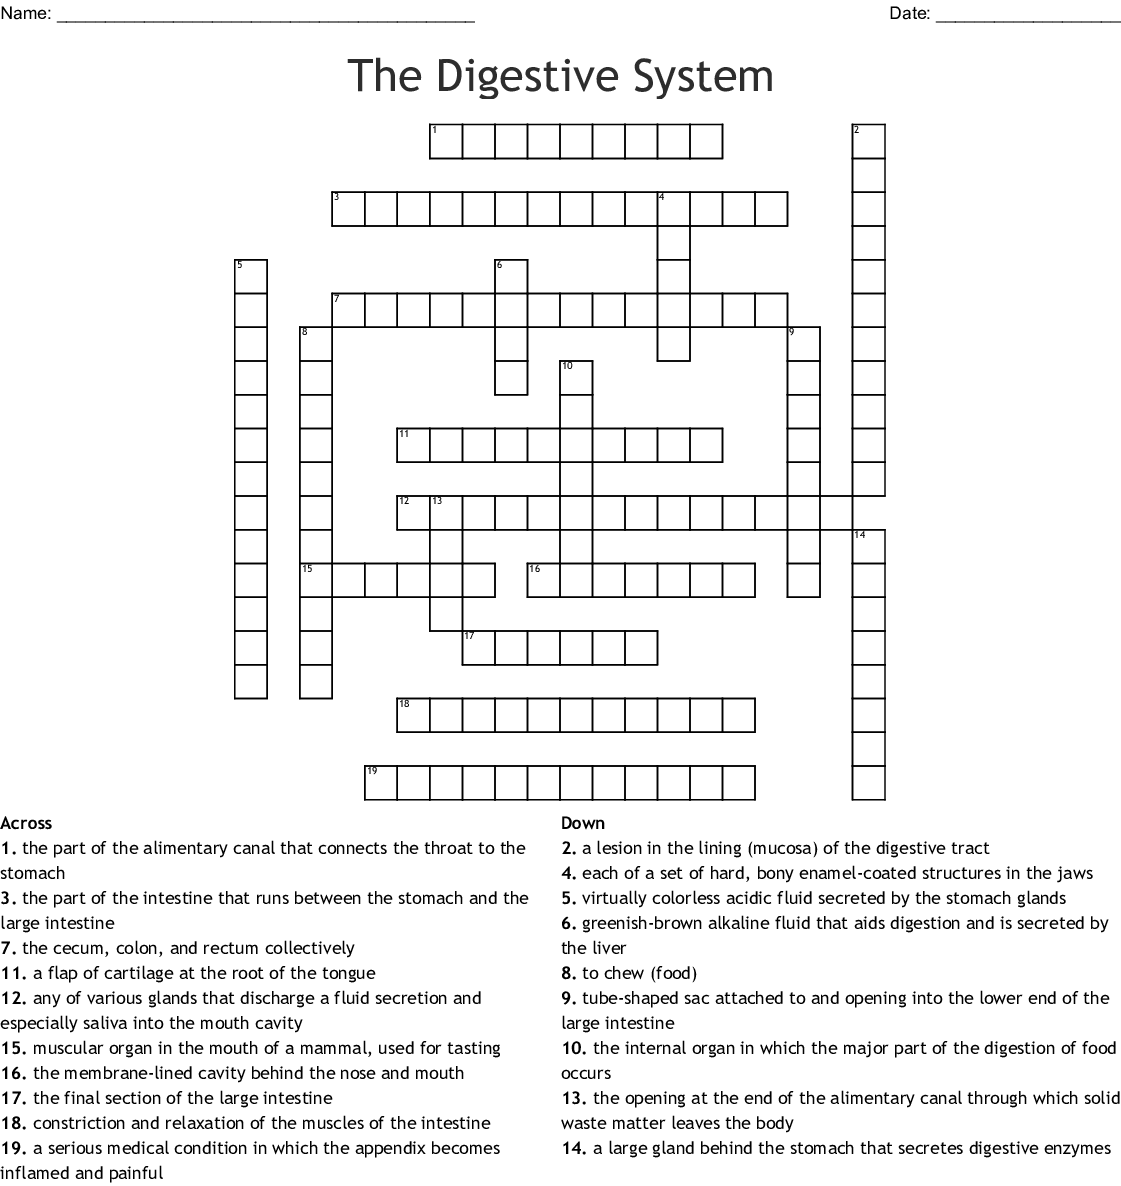 Crossword Puzzle Answer Key Human Digestive System